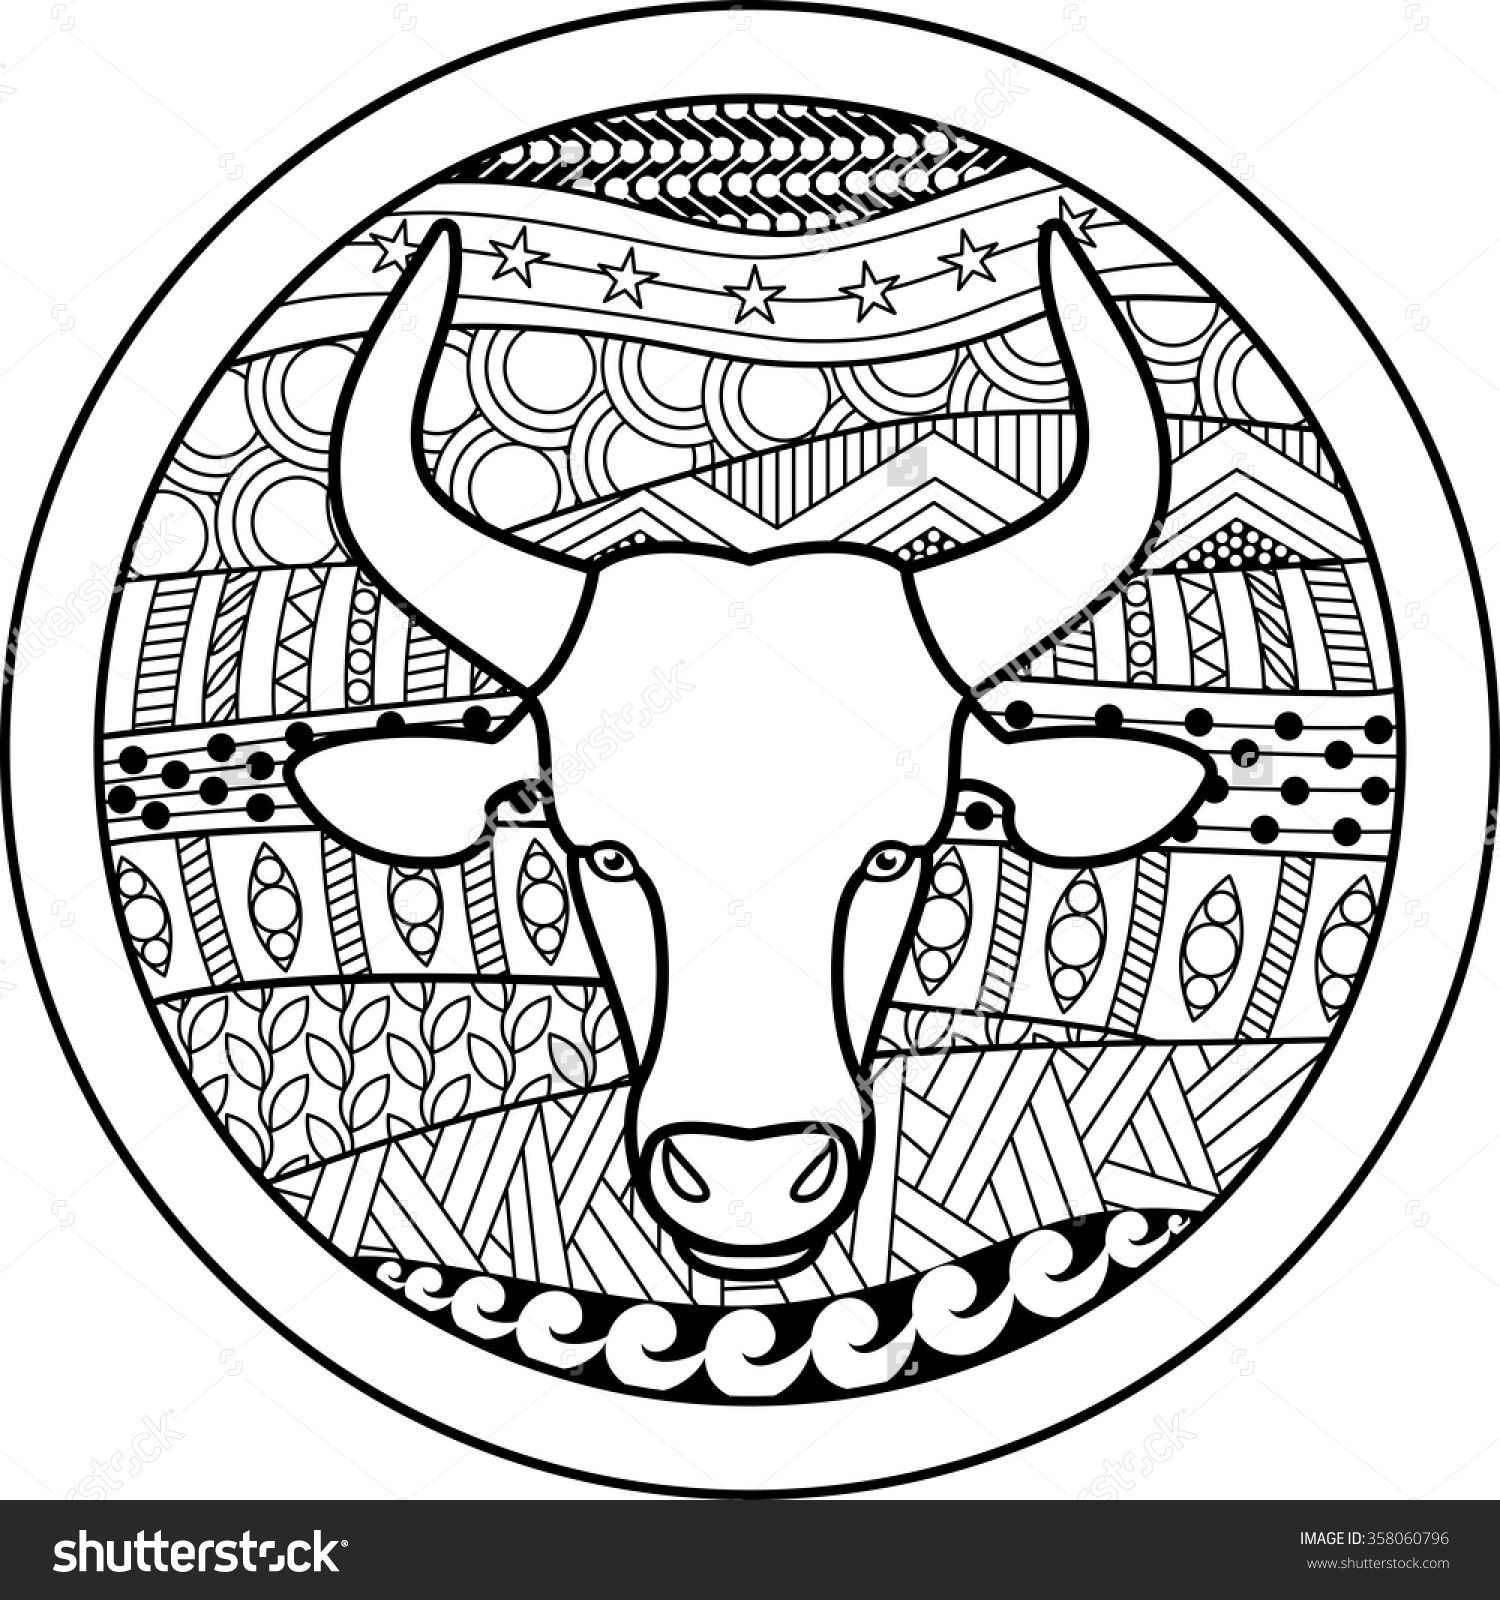 Best ideas about Zodiac Coloring Pages For Adults . Save or Pin Zodiac sign Taurus zentangle Now.